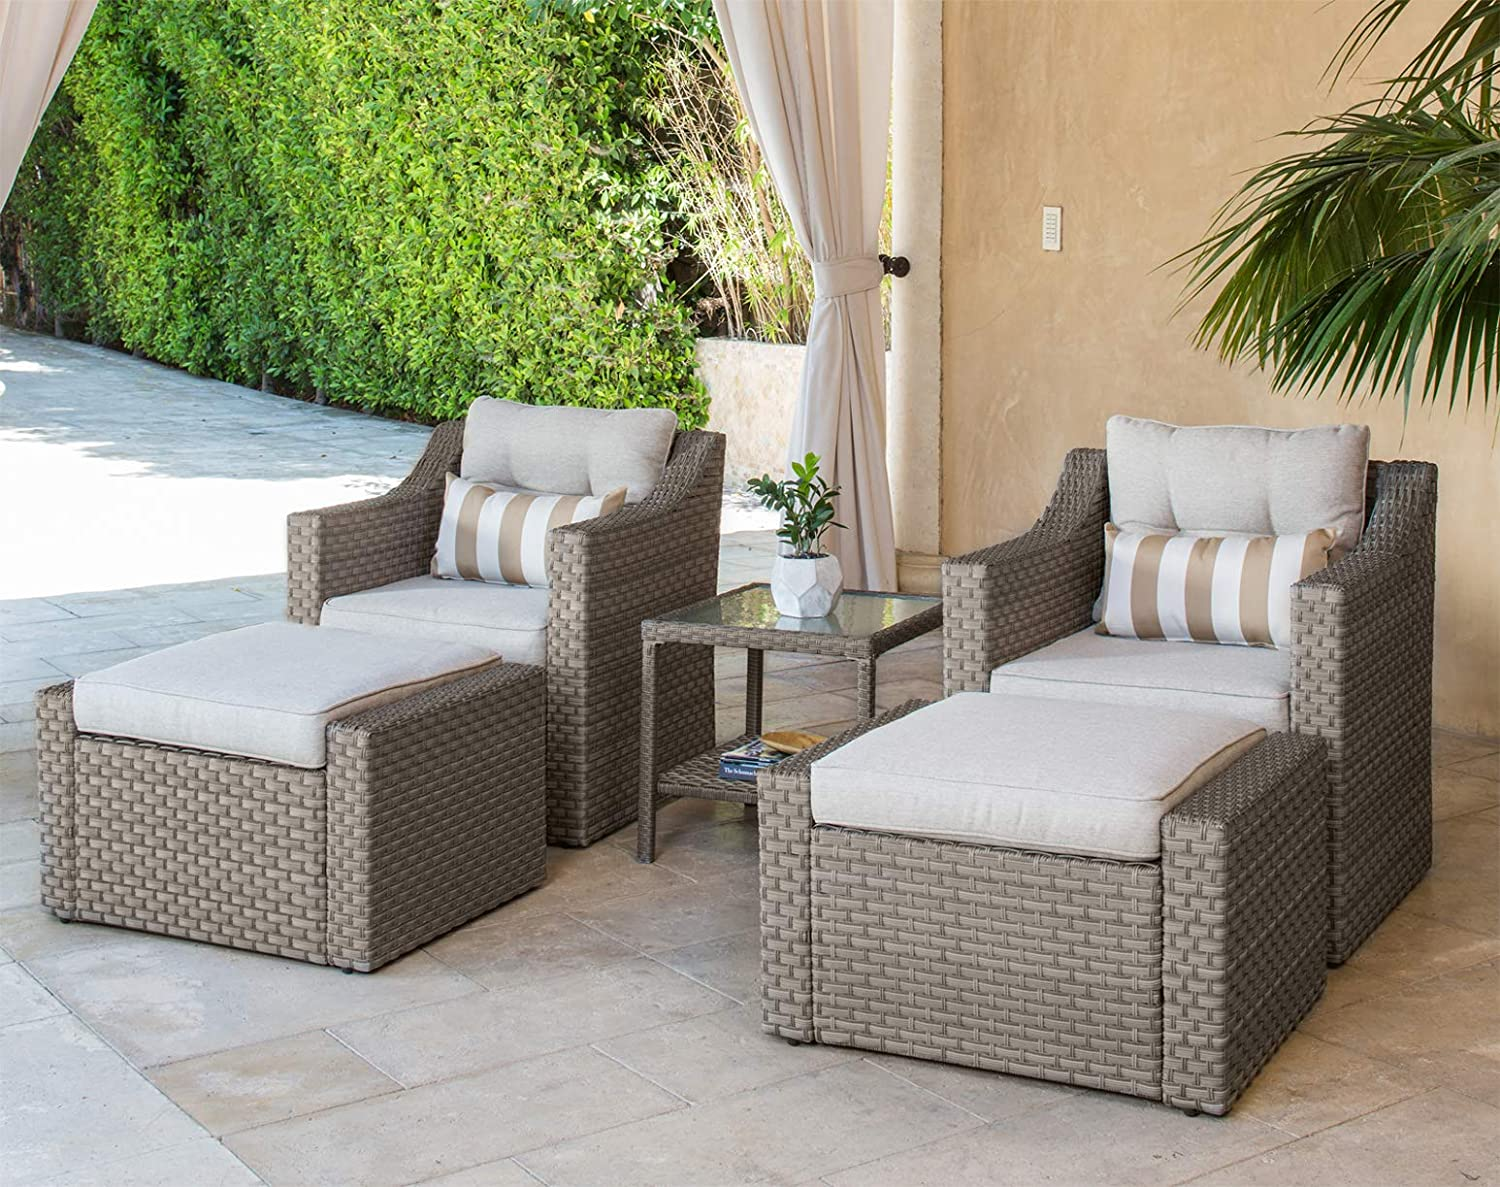 Solaura patio sofa sets 5 piece outdoor furniture set grey wicker lounge chair ottoman with neutral beige olefin fiber cushions glass coffee side table